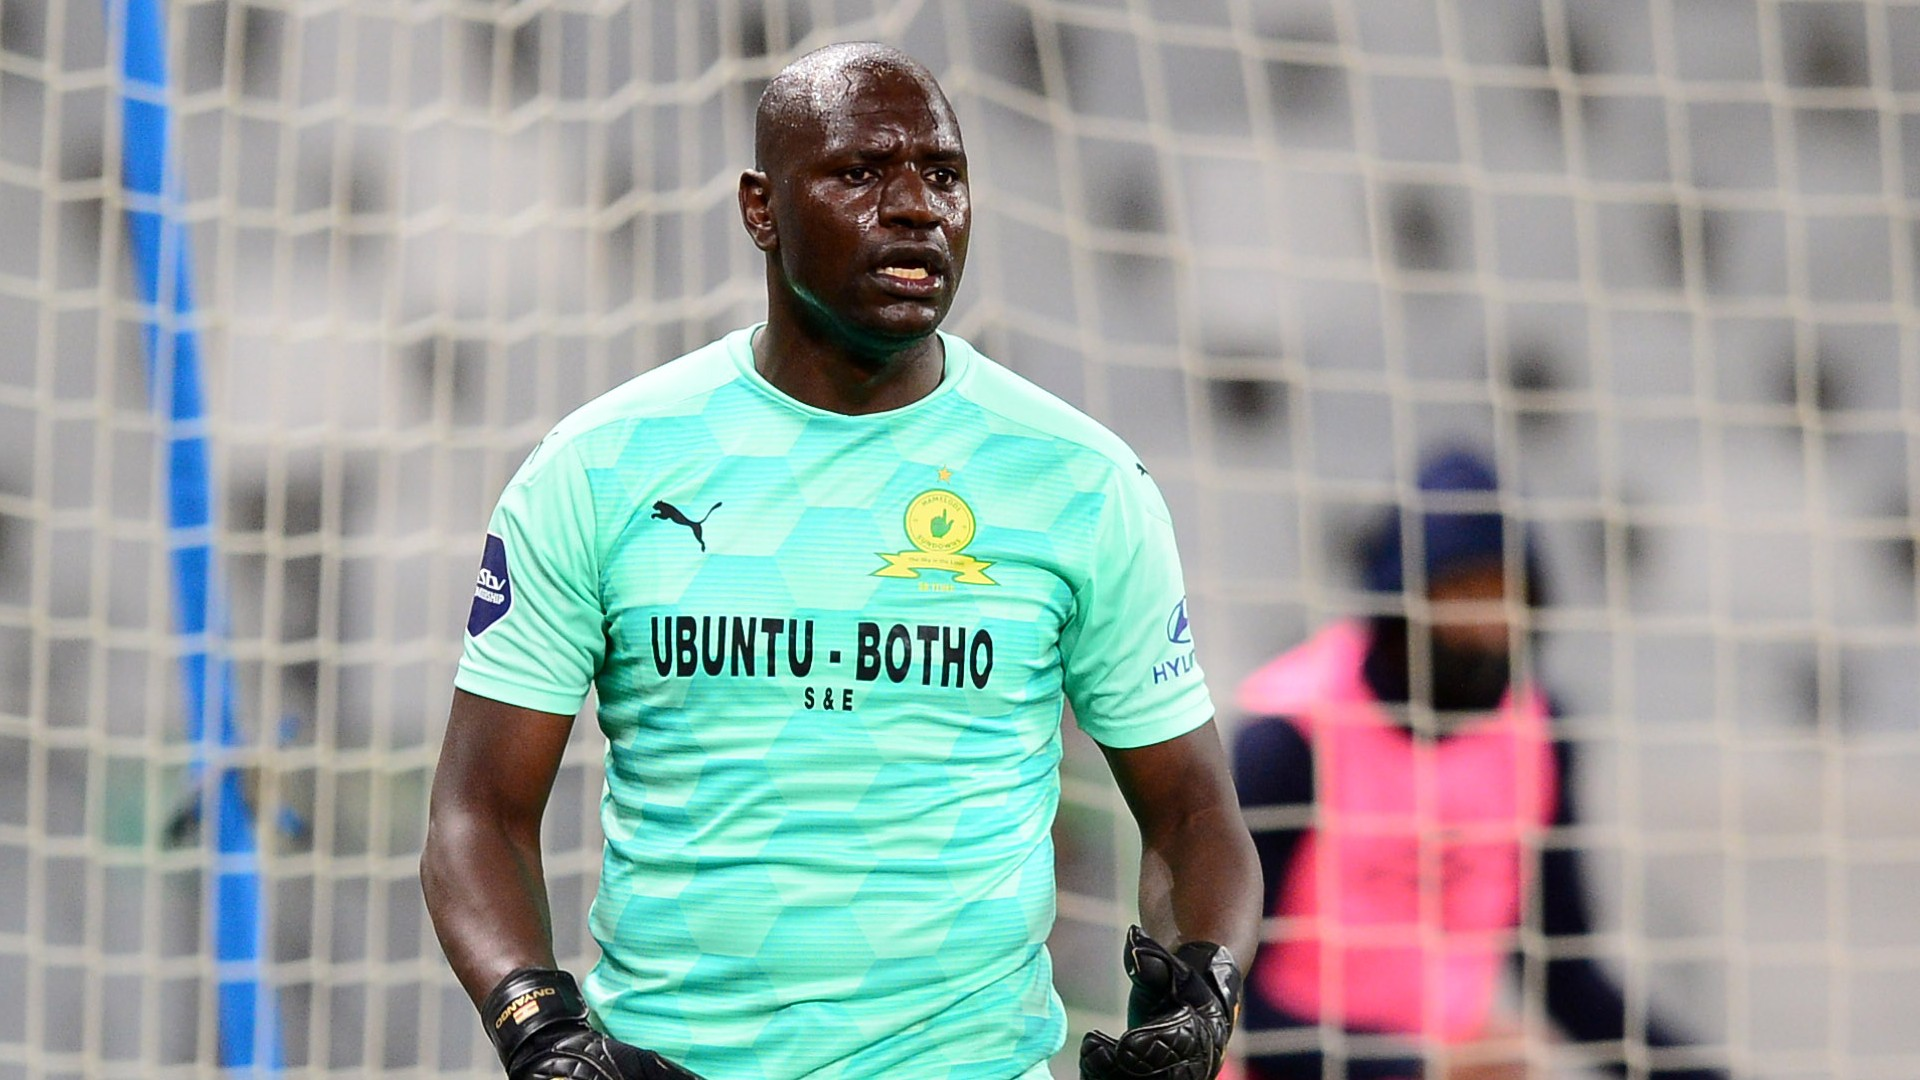 Nkosi on Onyango elbow incident: He could have cost Mamelodi Sundowns